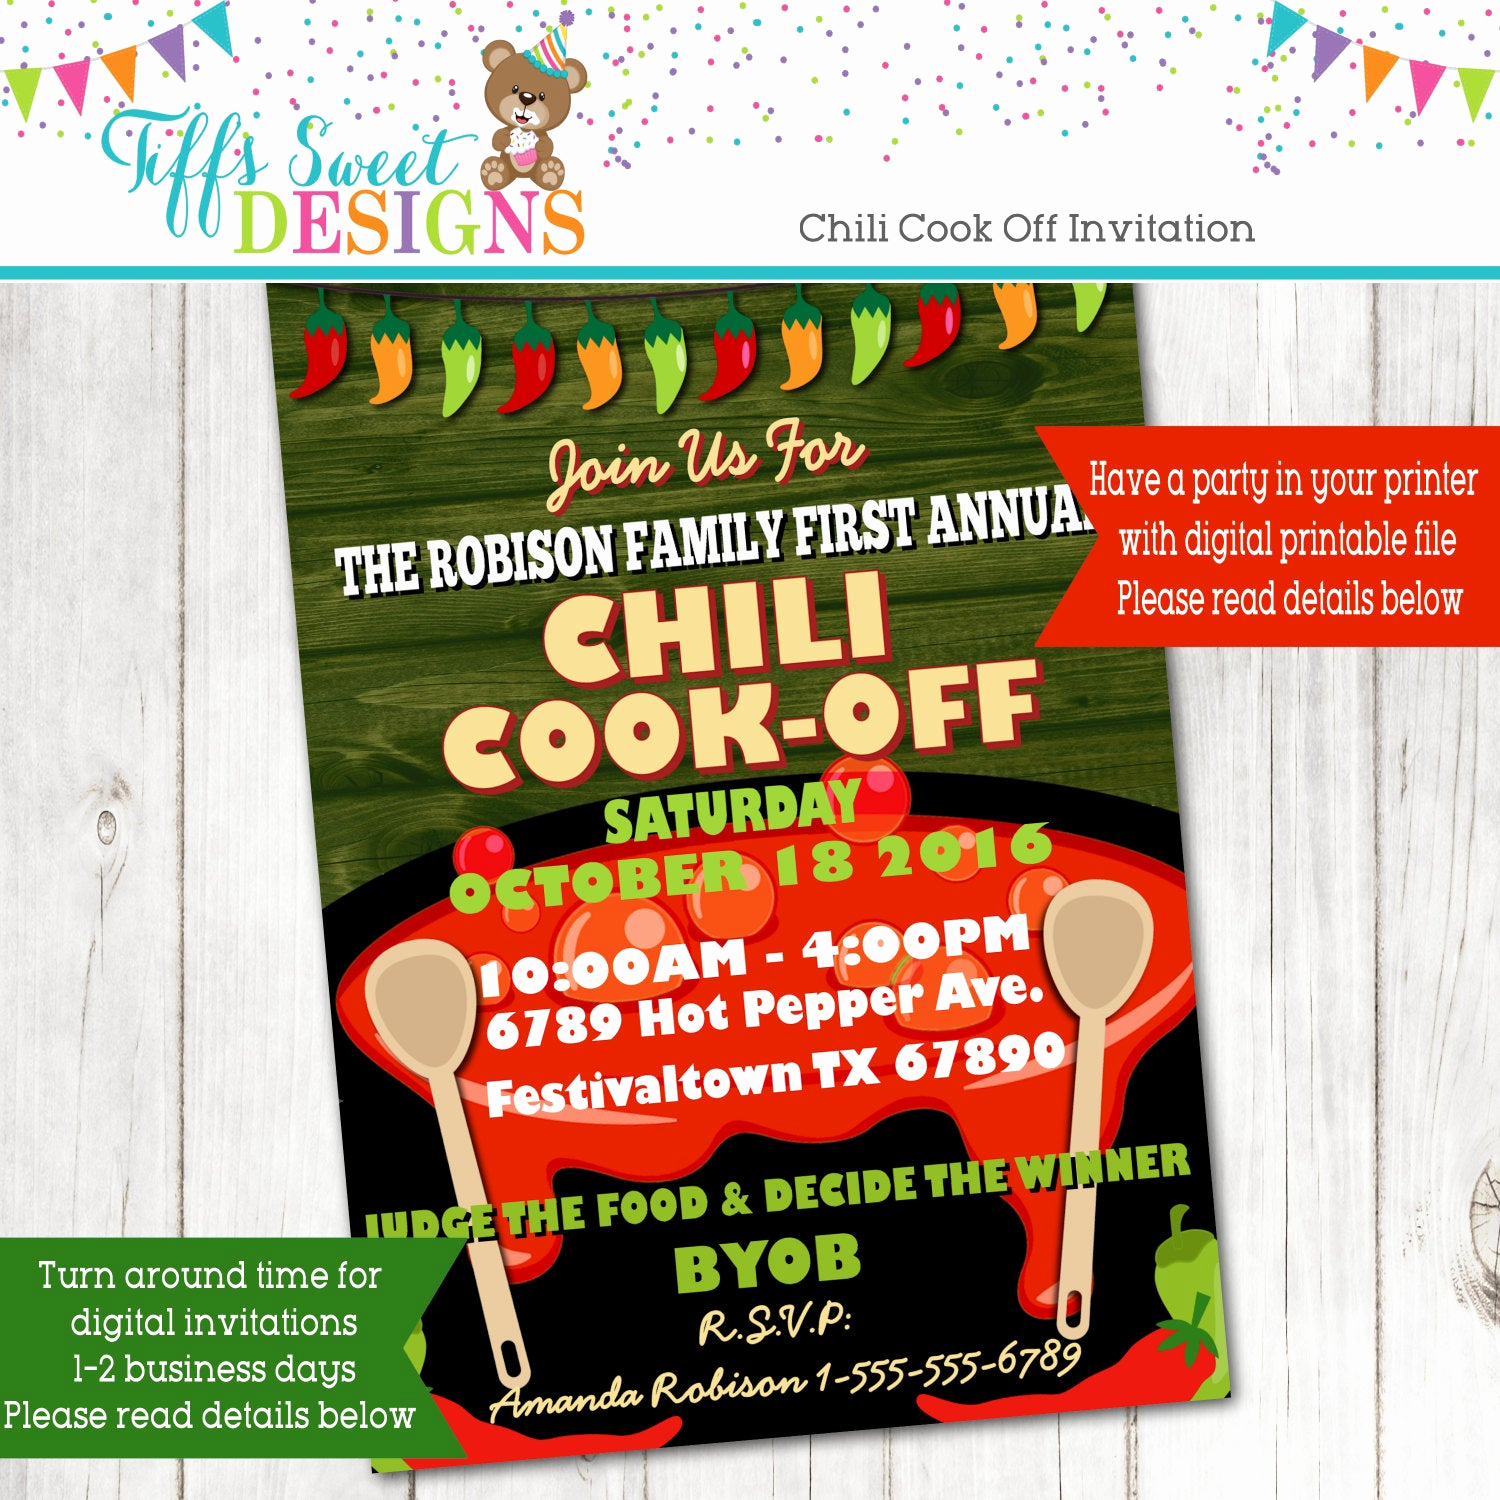 Chili Cook Off Invitation Fresh Chili Cook F Invitation Hot Pepper Invitation Annual